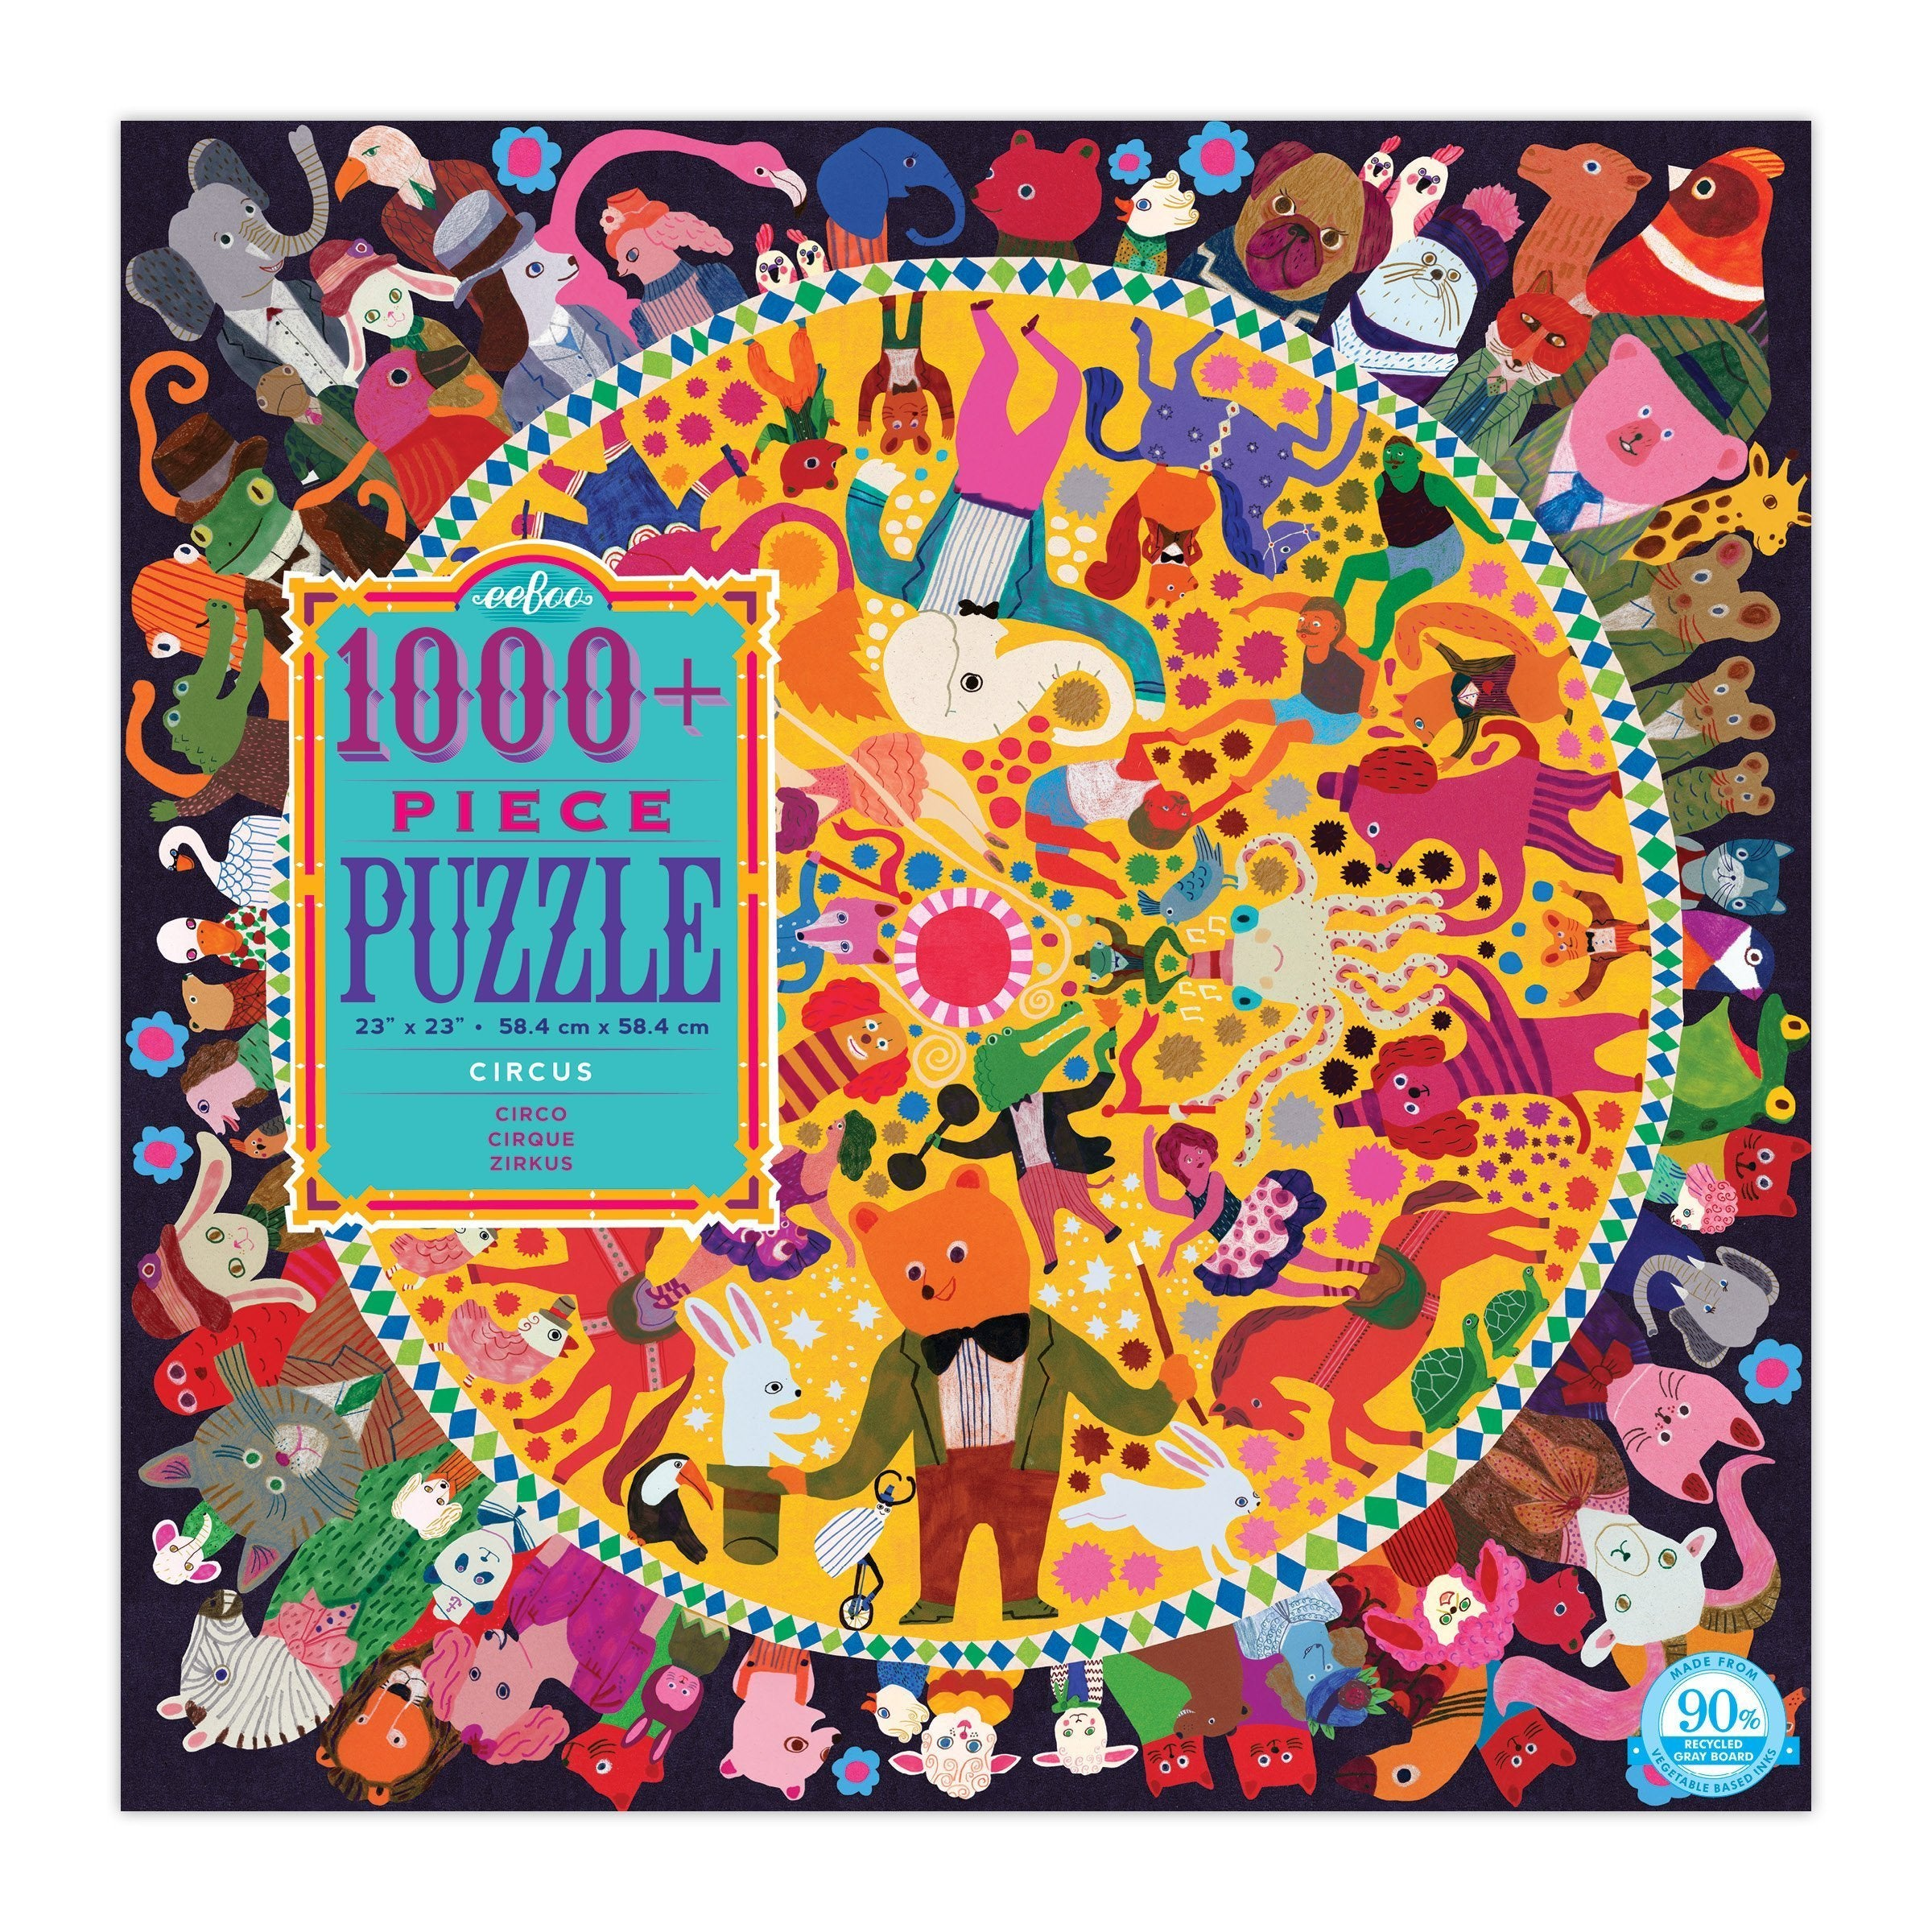 One thousand pieces! Get right to it! With patience you can surely do it. Inside the busy circus ring Performers deftly do their thing. (And the throng that's come to see Is also a menagerie!) Everyone can gather round… This puzzle's never upside down!